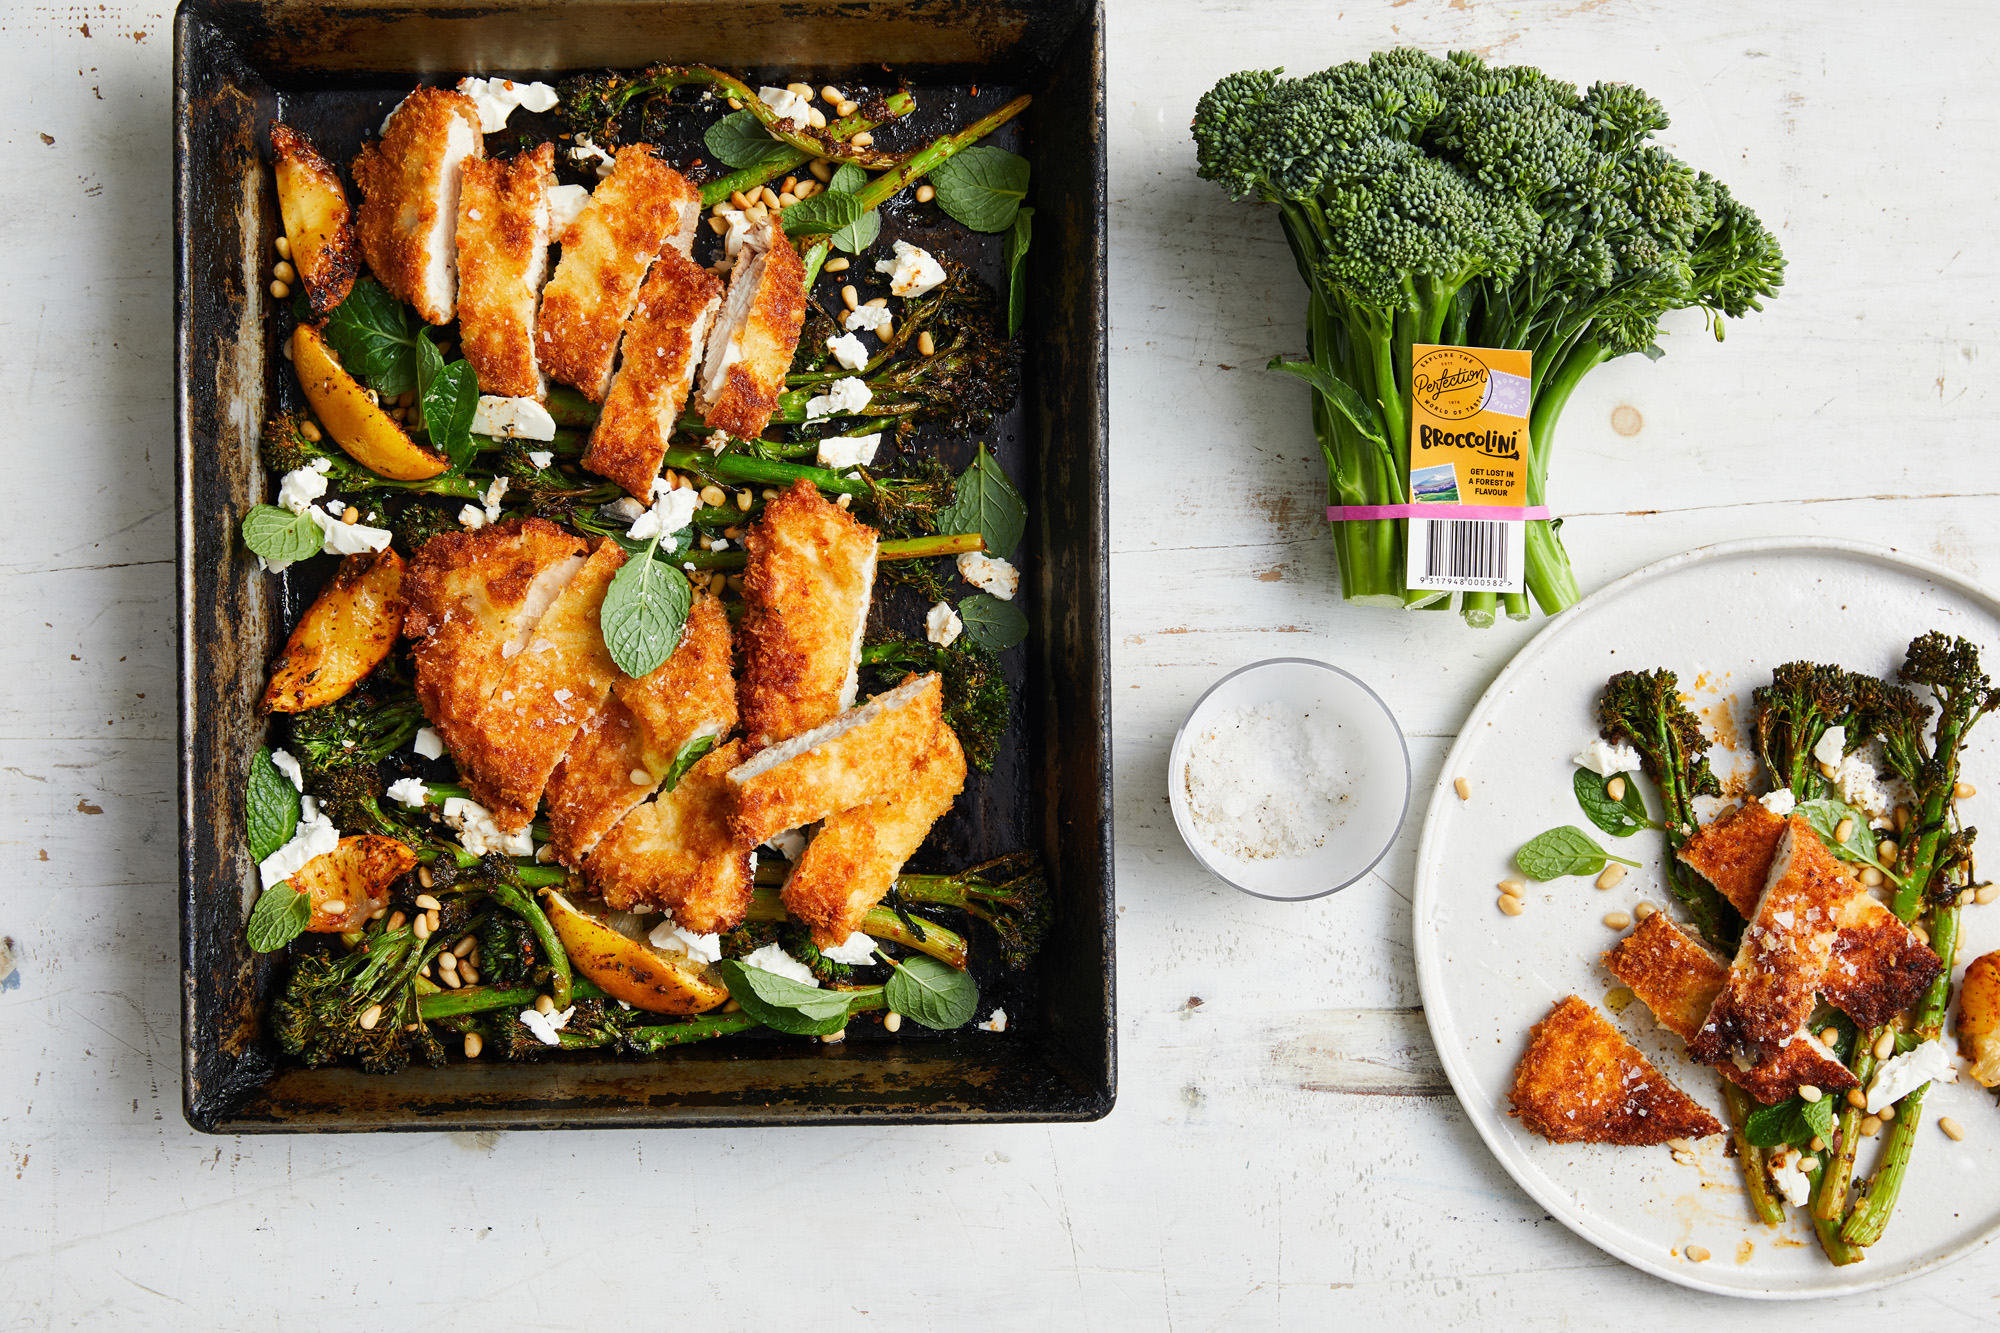 Recipe_LR_Broccolini_Middle Eastern Broccolini Chicken Schnitty_Janelle Bloom_2020_01